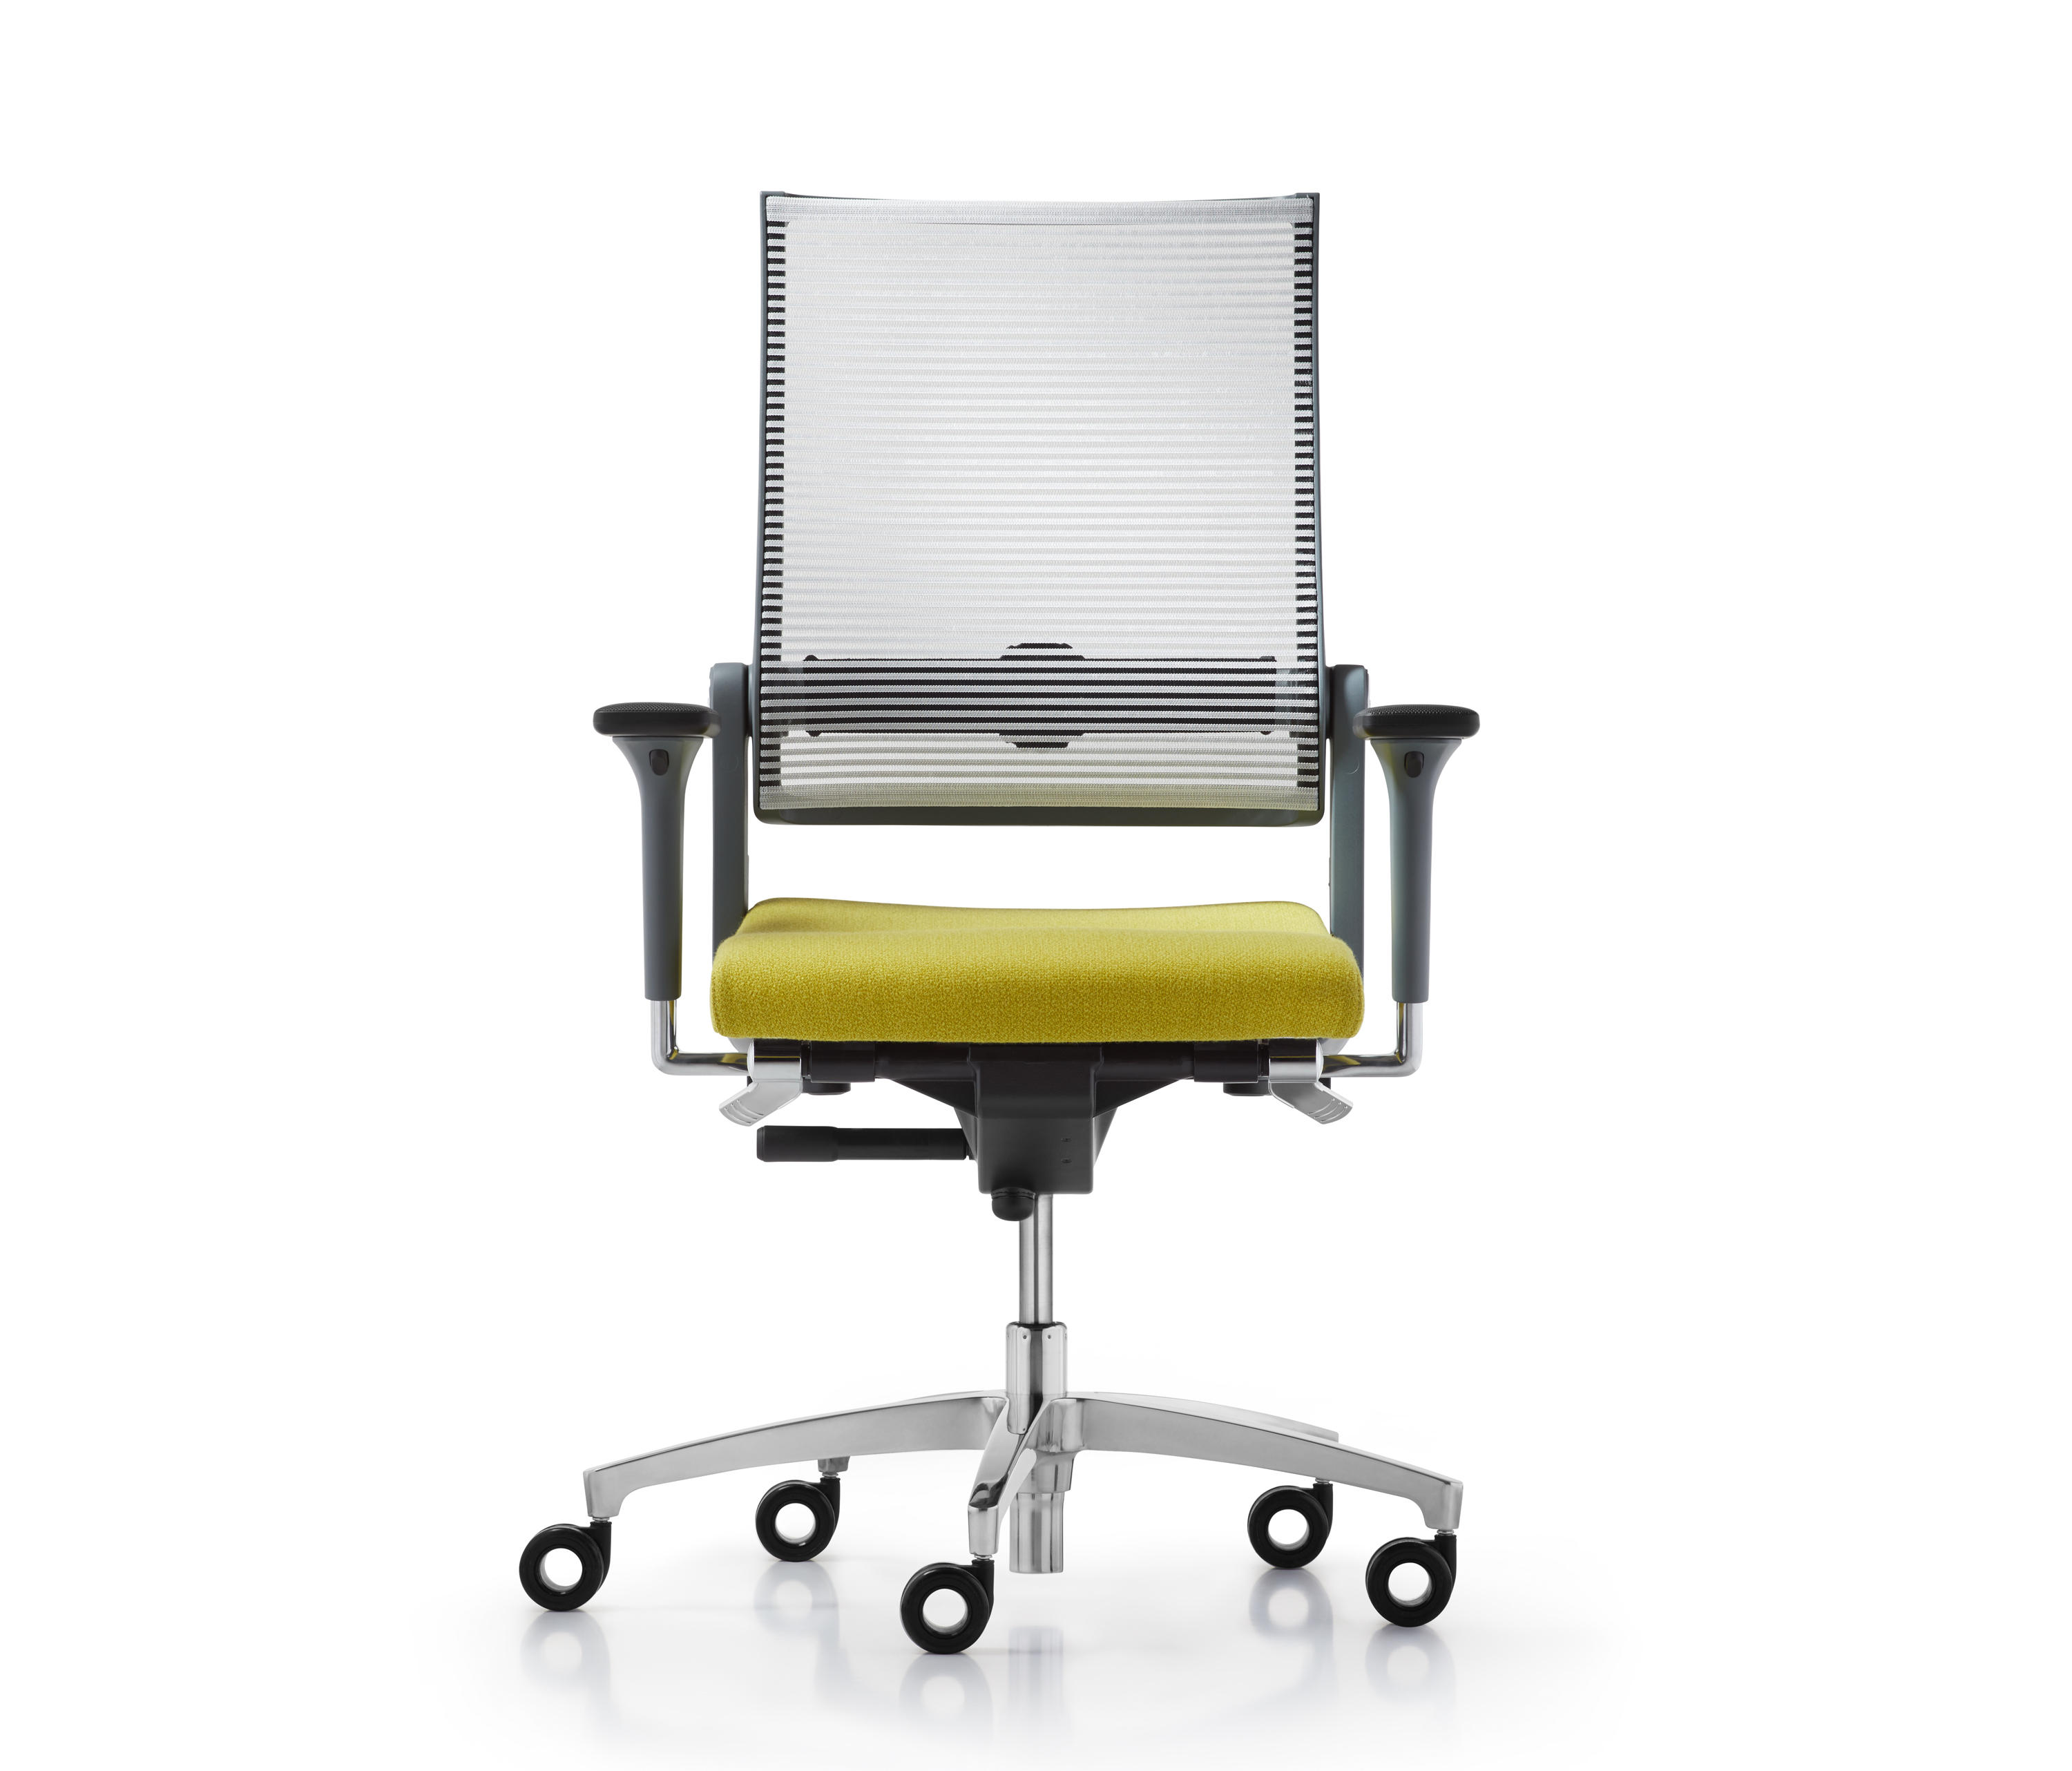 Pleasant Lordo Flex Office Chairs From Dauphin Architonic Lamtechconsult Wood Chair Design Ideas Lamtechconsultcom